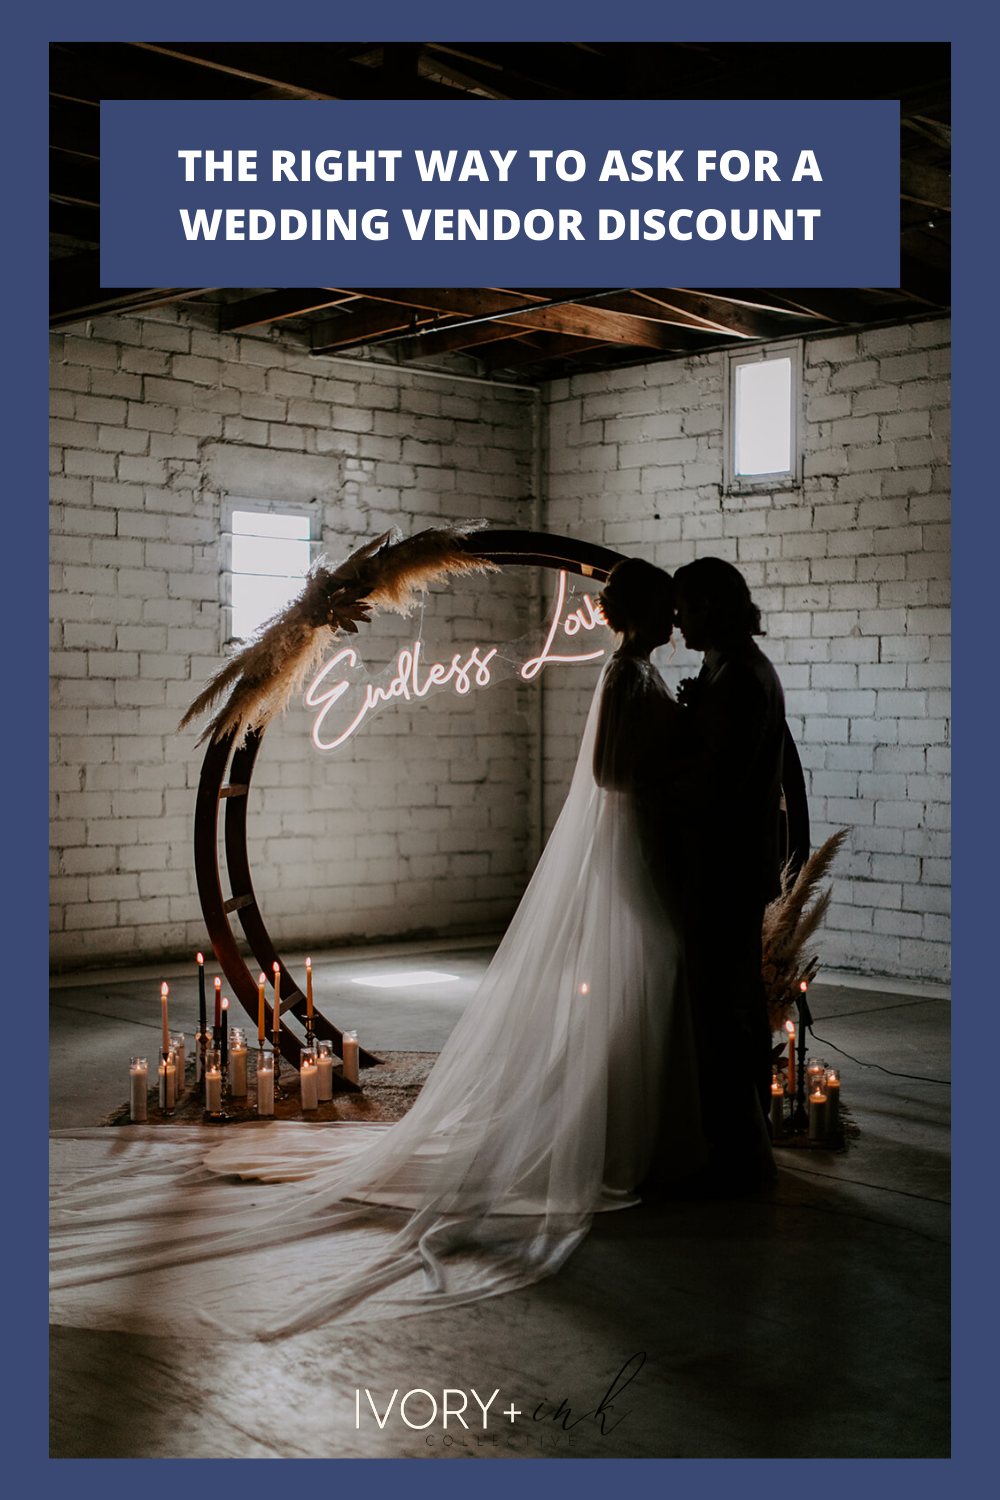 The Right Way to Ask for a Wedding Vendor Discount - originally published on ivoryandink.com